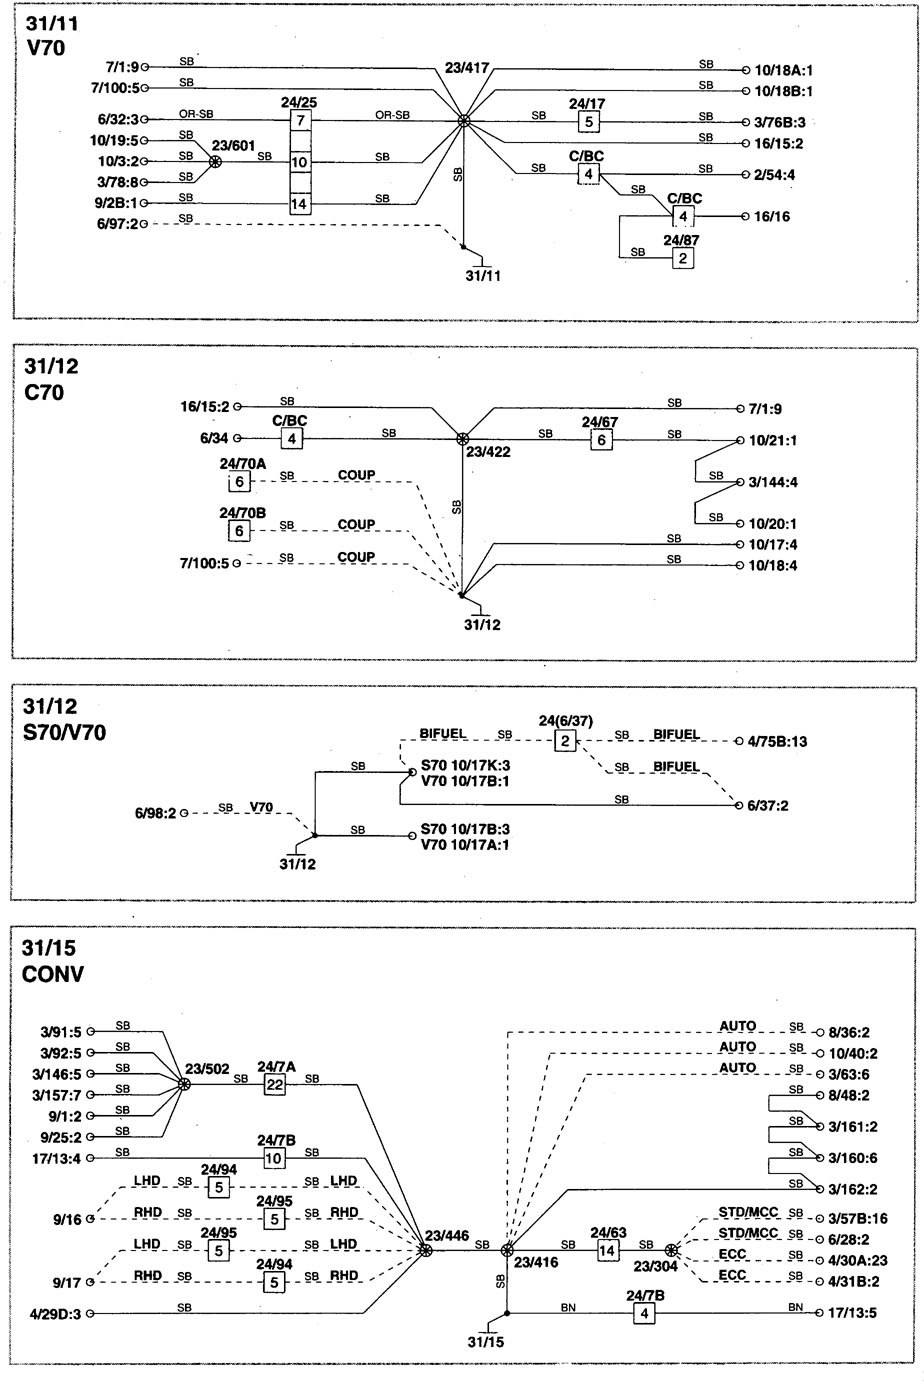 volvo c70 wiring diagram ground distribution 3 1999 volvo c70 (1999 2004) wiring diagrams ground distribution 1999 volvo c70 wiring diagram at bayanpartner.co